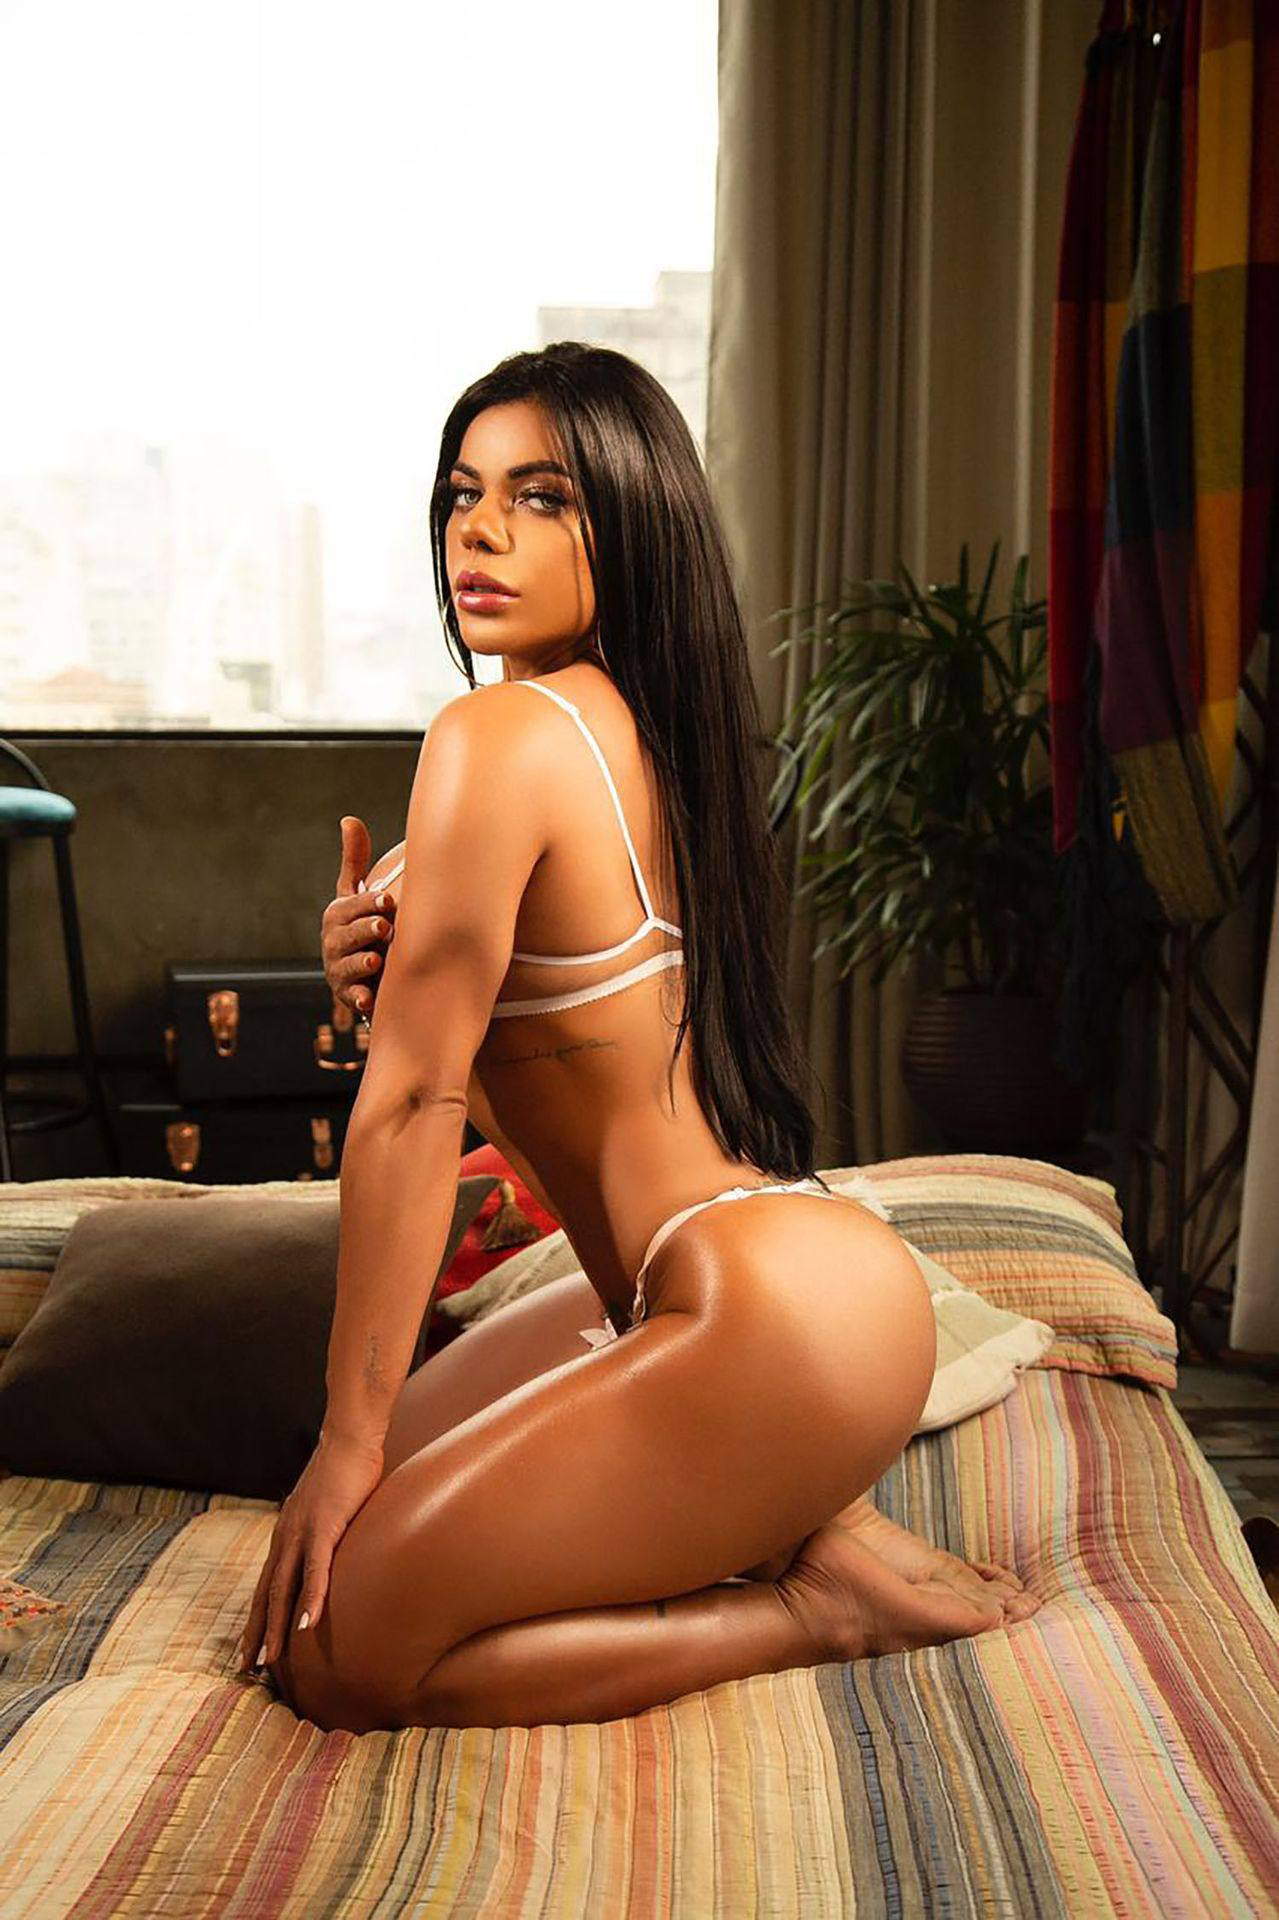 Suzy Cortez – Sexy Big Ass In Hot Lingerie Photoshoot 0003